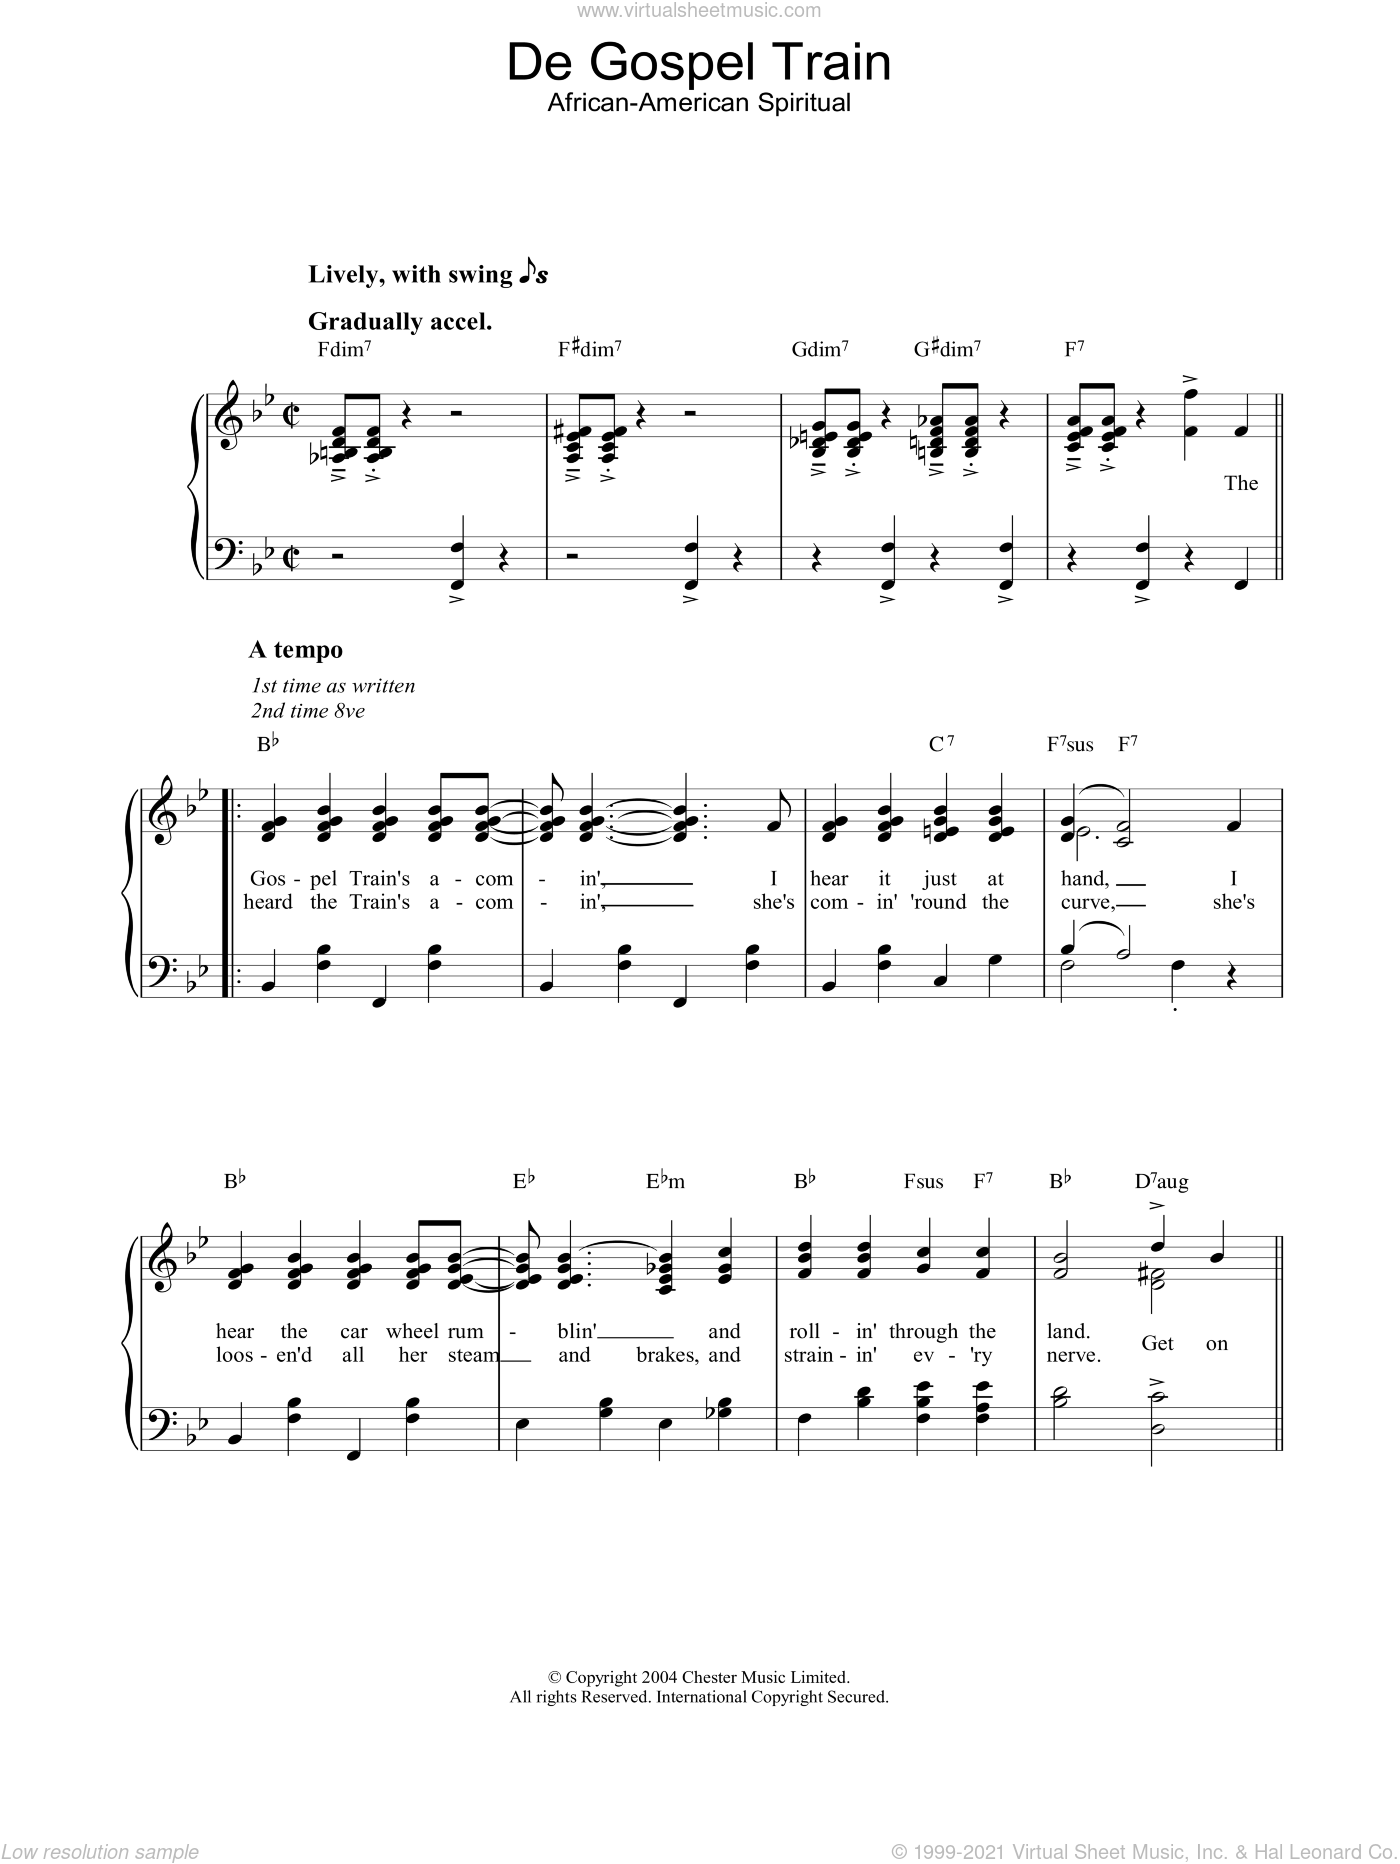 De Gospel Train sheet music for piano solo, easy skill level